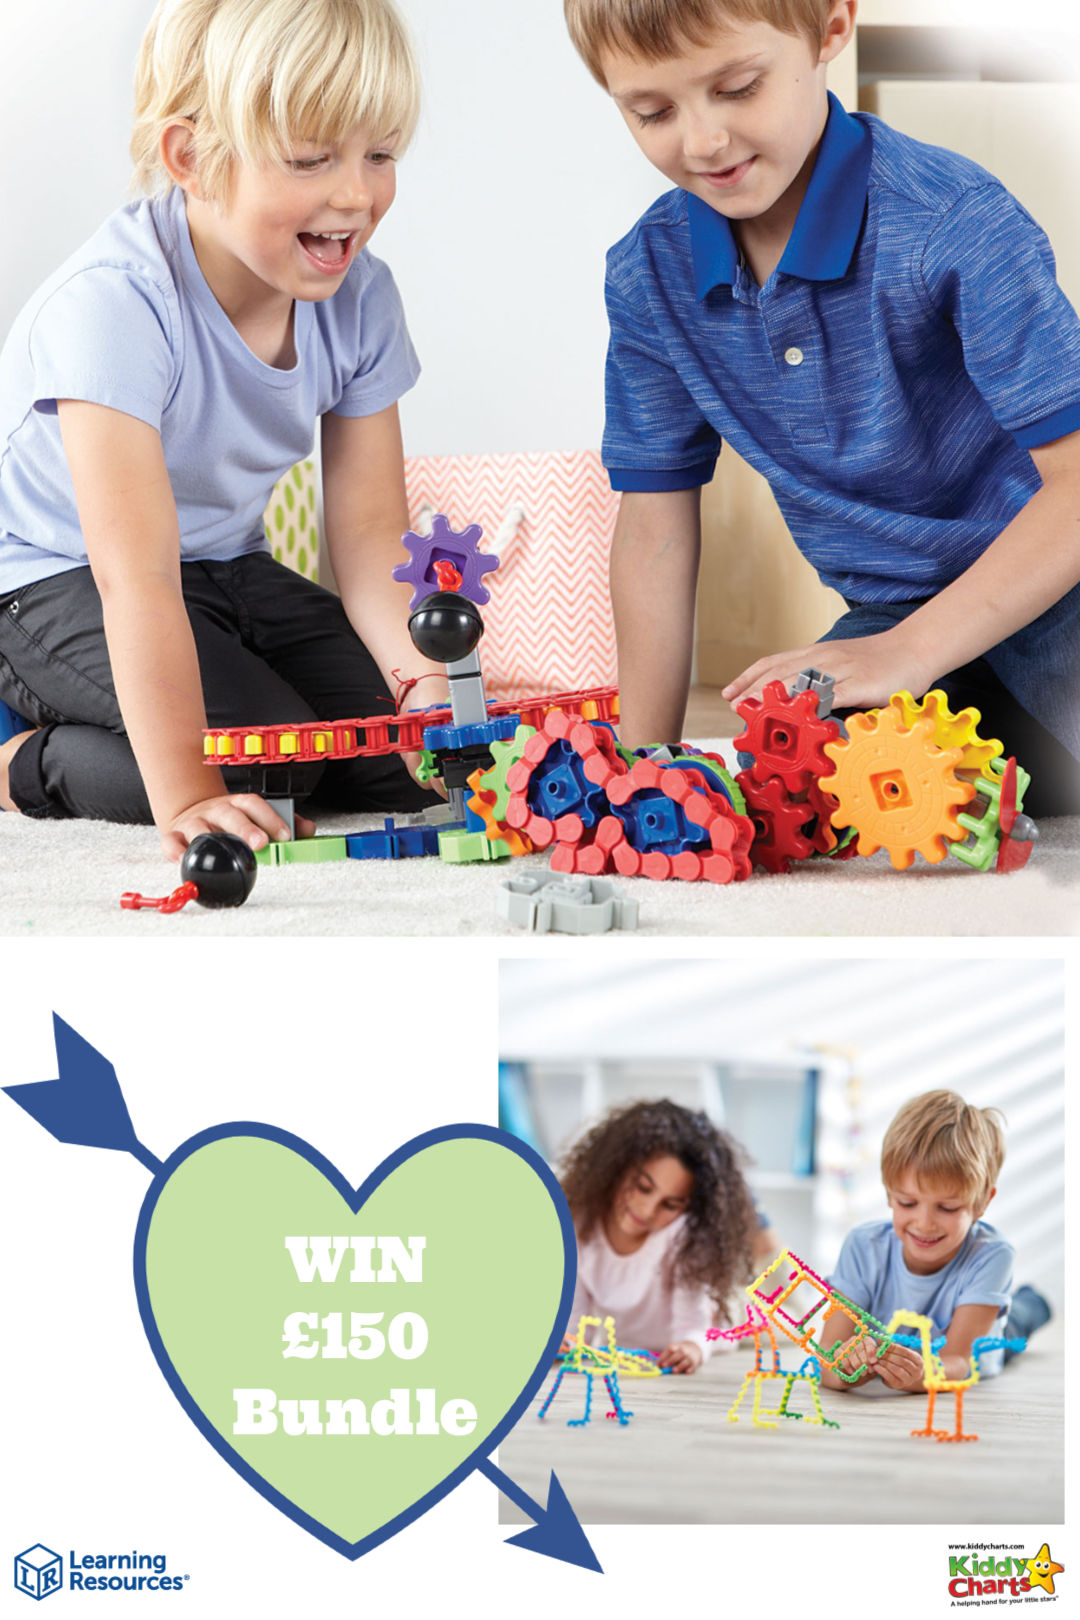 Win an amazing £150 bundle of toys from Learning Resources! #win #giveaways #toys